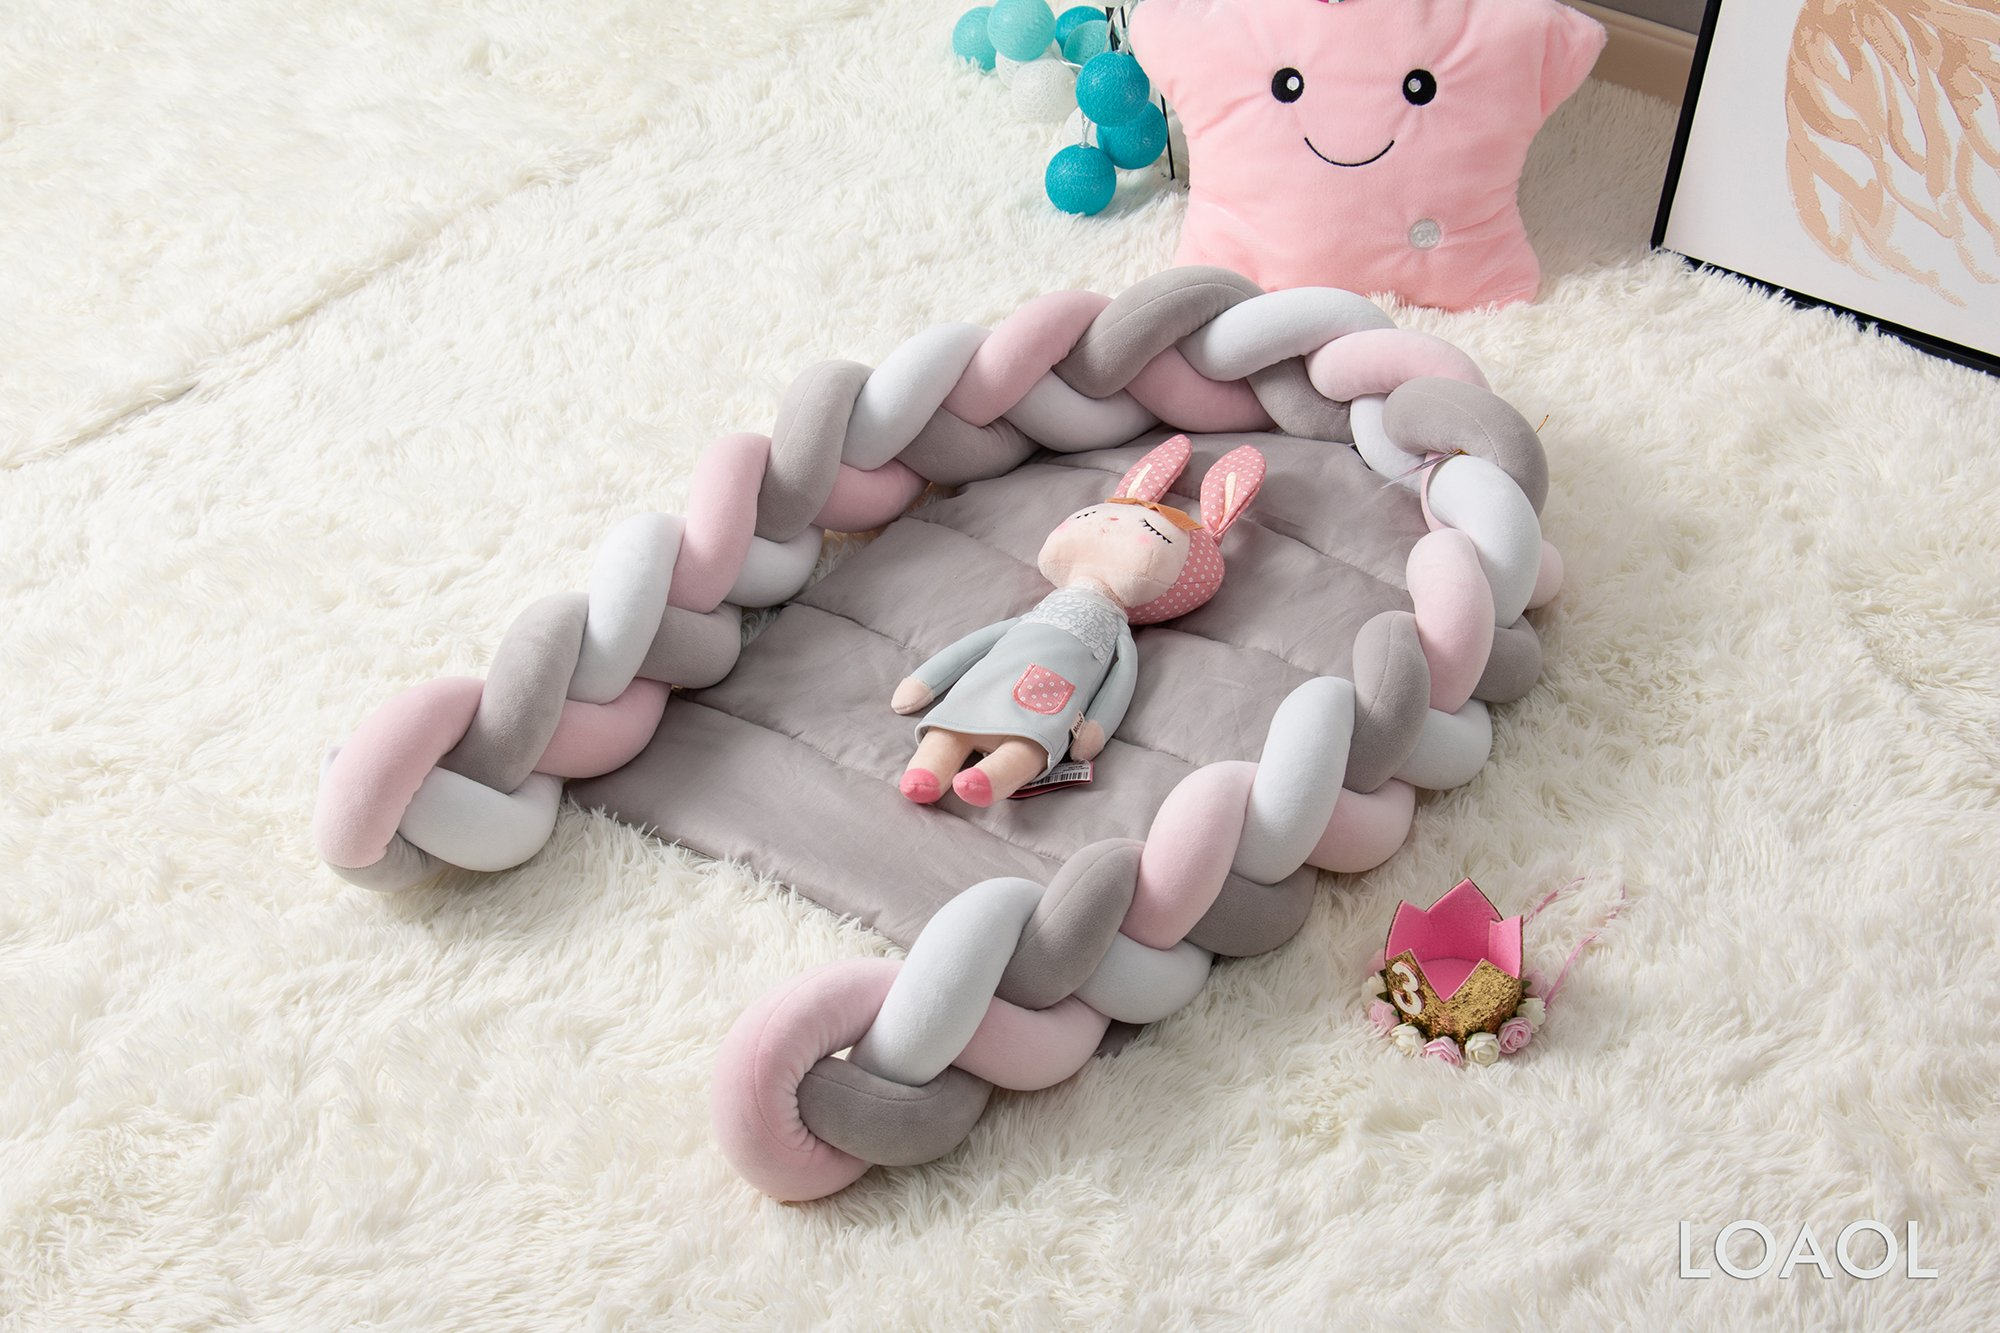 LOAOL Baby Crib Nest Bed Newborn Lounger Sleeper Knotted Braided Infant Nursery Decor Cradle Bumper (White-Gray-Pink, 17.7'' x 23.6'') by LOAOL (Image #2)